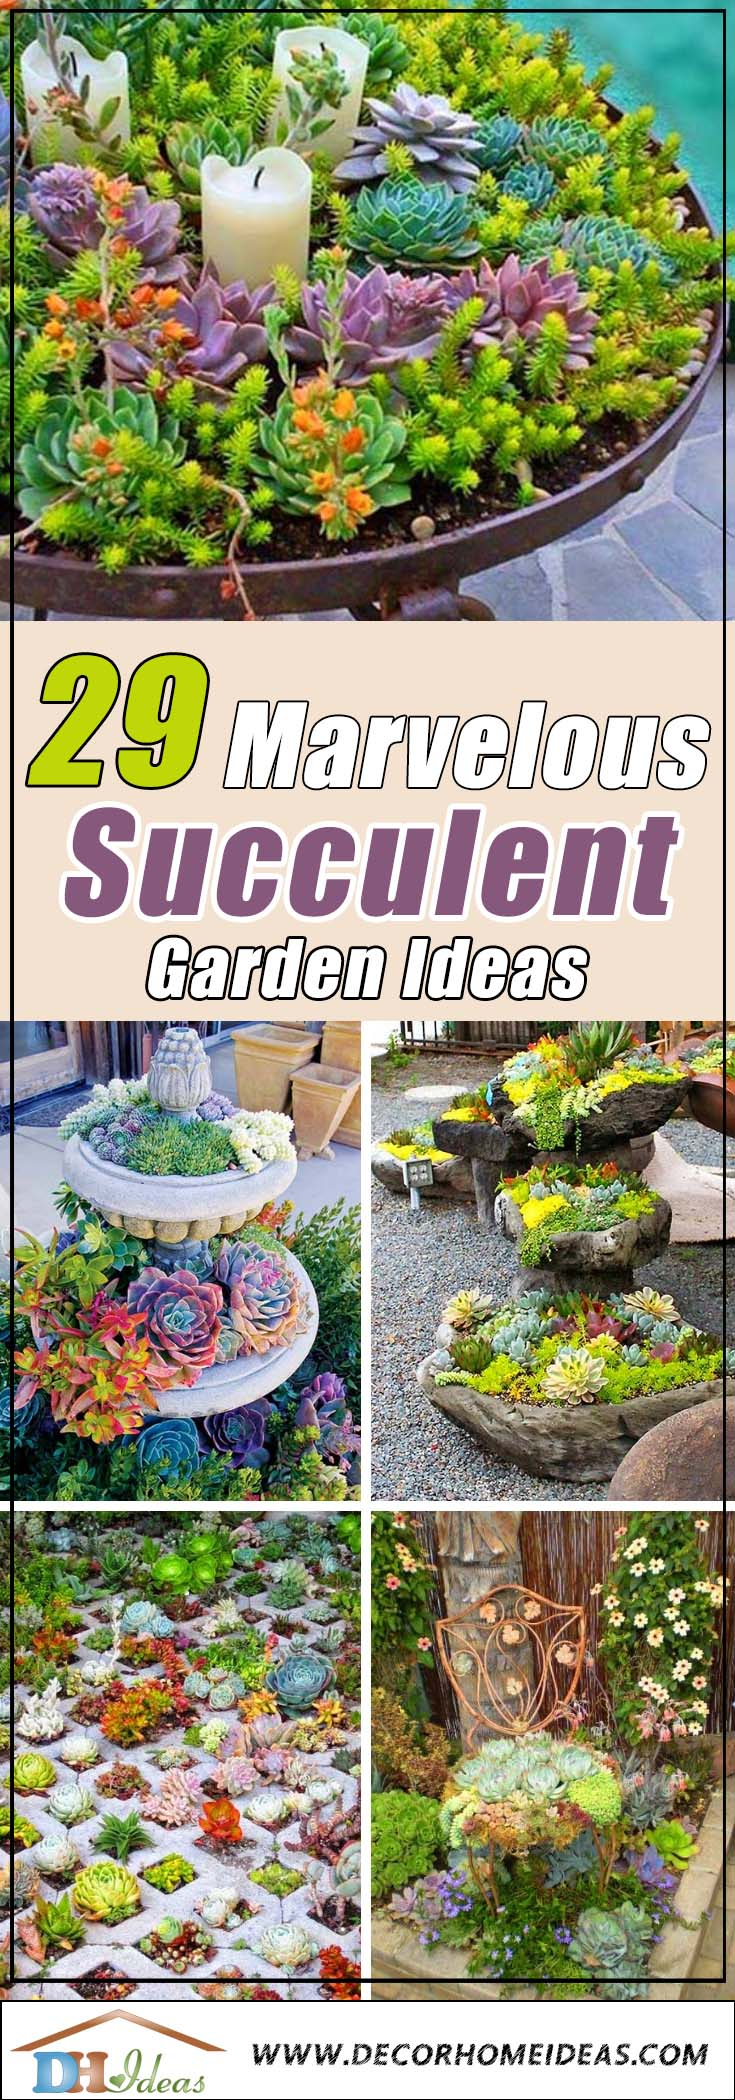 29 Marvelous Succulent Garden Ideas | Succulents tips, ideas and arrangements. Garden ideas, planters, flower pots and backyard ideas. #succulent #succulentlove #garden #gardenideas #flowers #planters #backyard #lawn #decor #tips #ideas #decorhomeideas